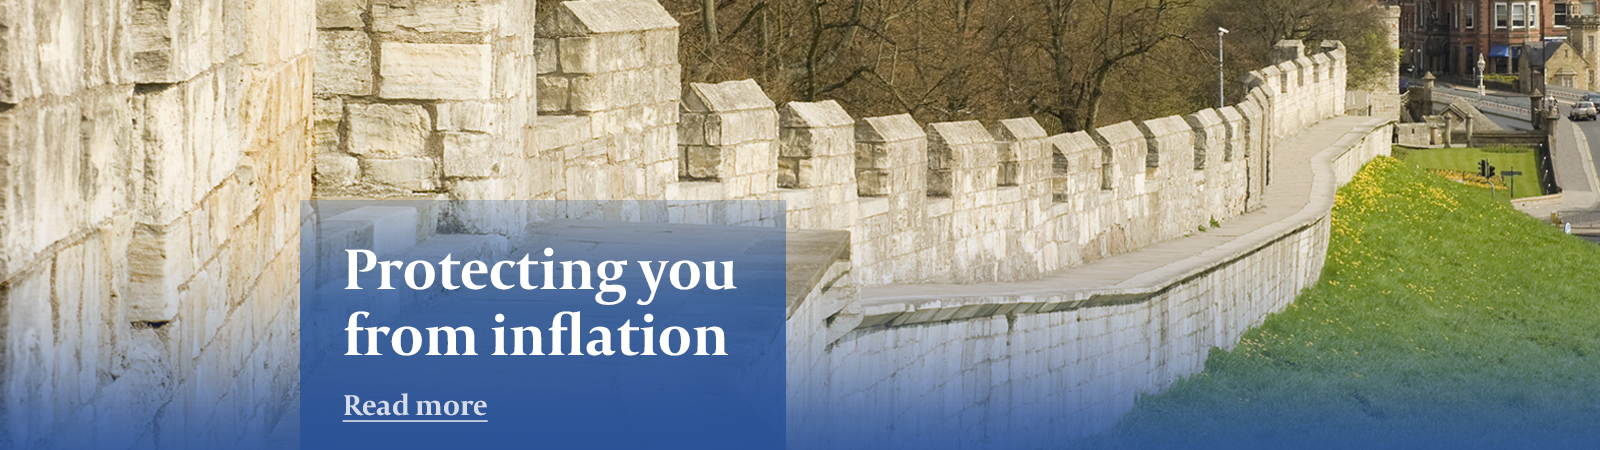 Inflation investment insights banner image